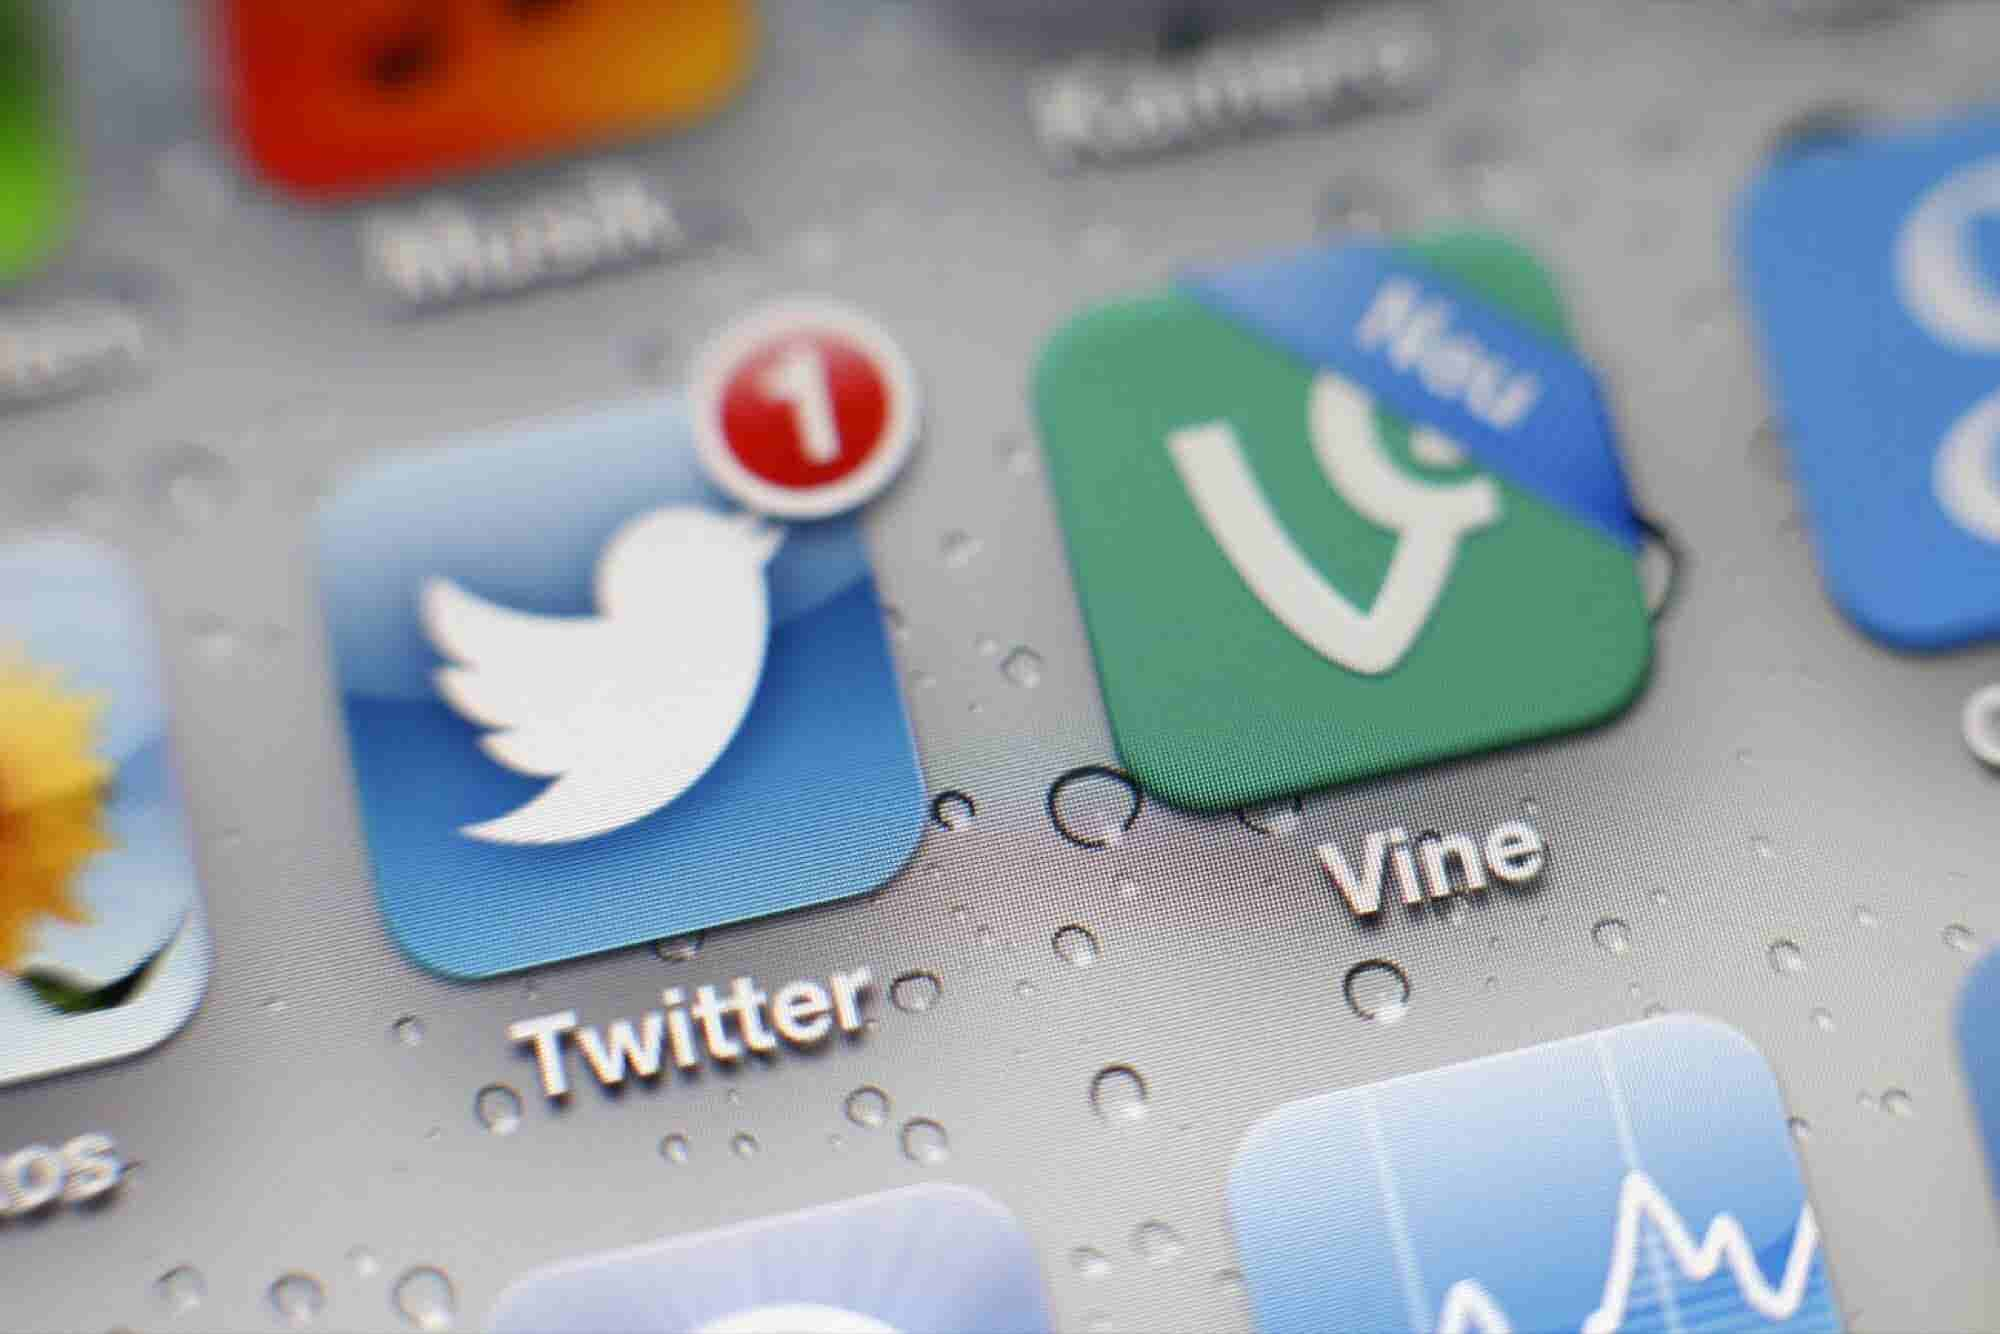 Where Have All The Viners Gone?